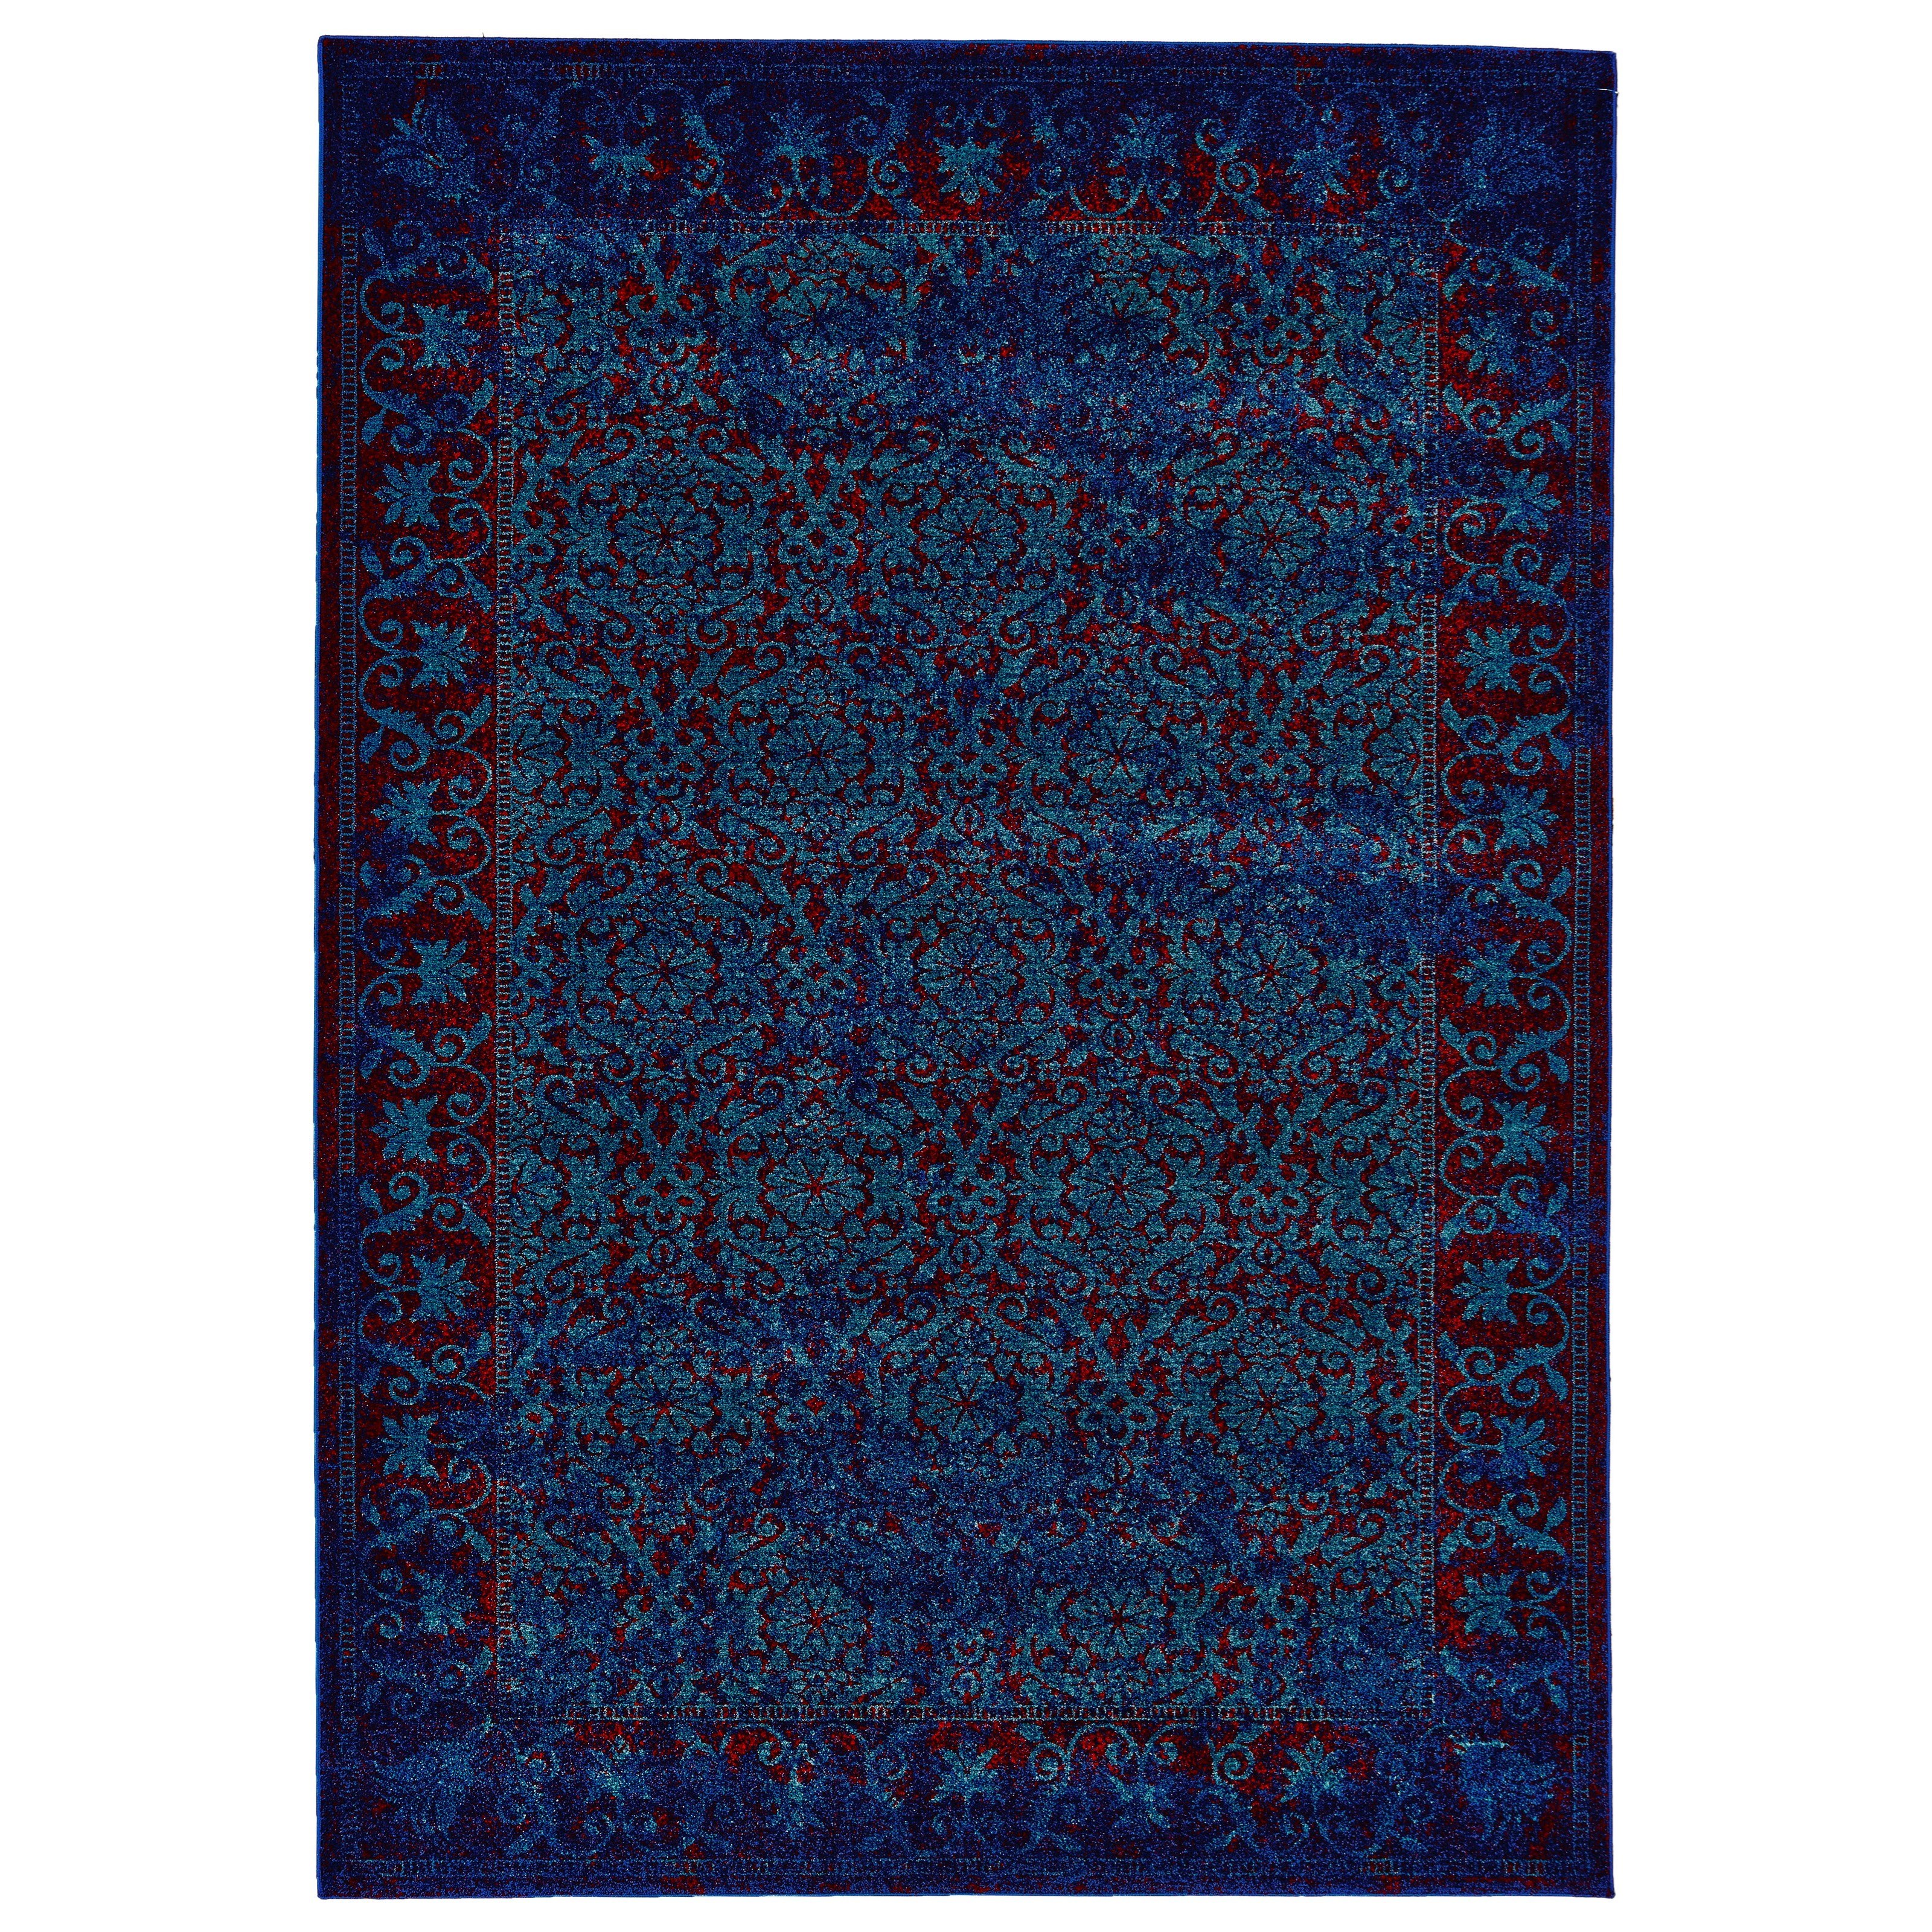 Archean Azure 8' X 11' Area Rug by Feizy Rugs at Sprintz Furniture